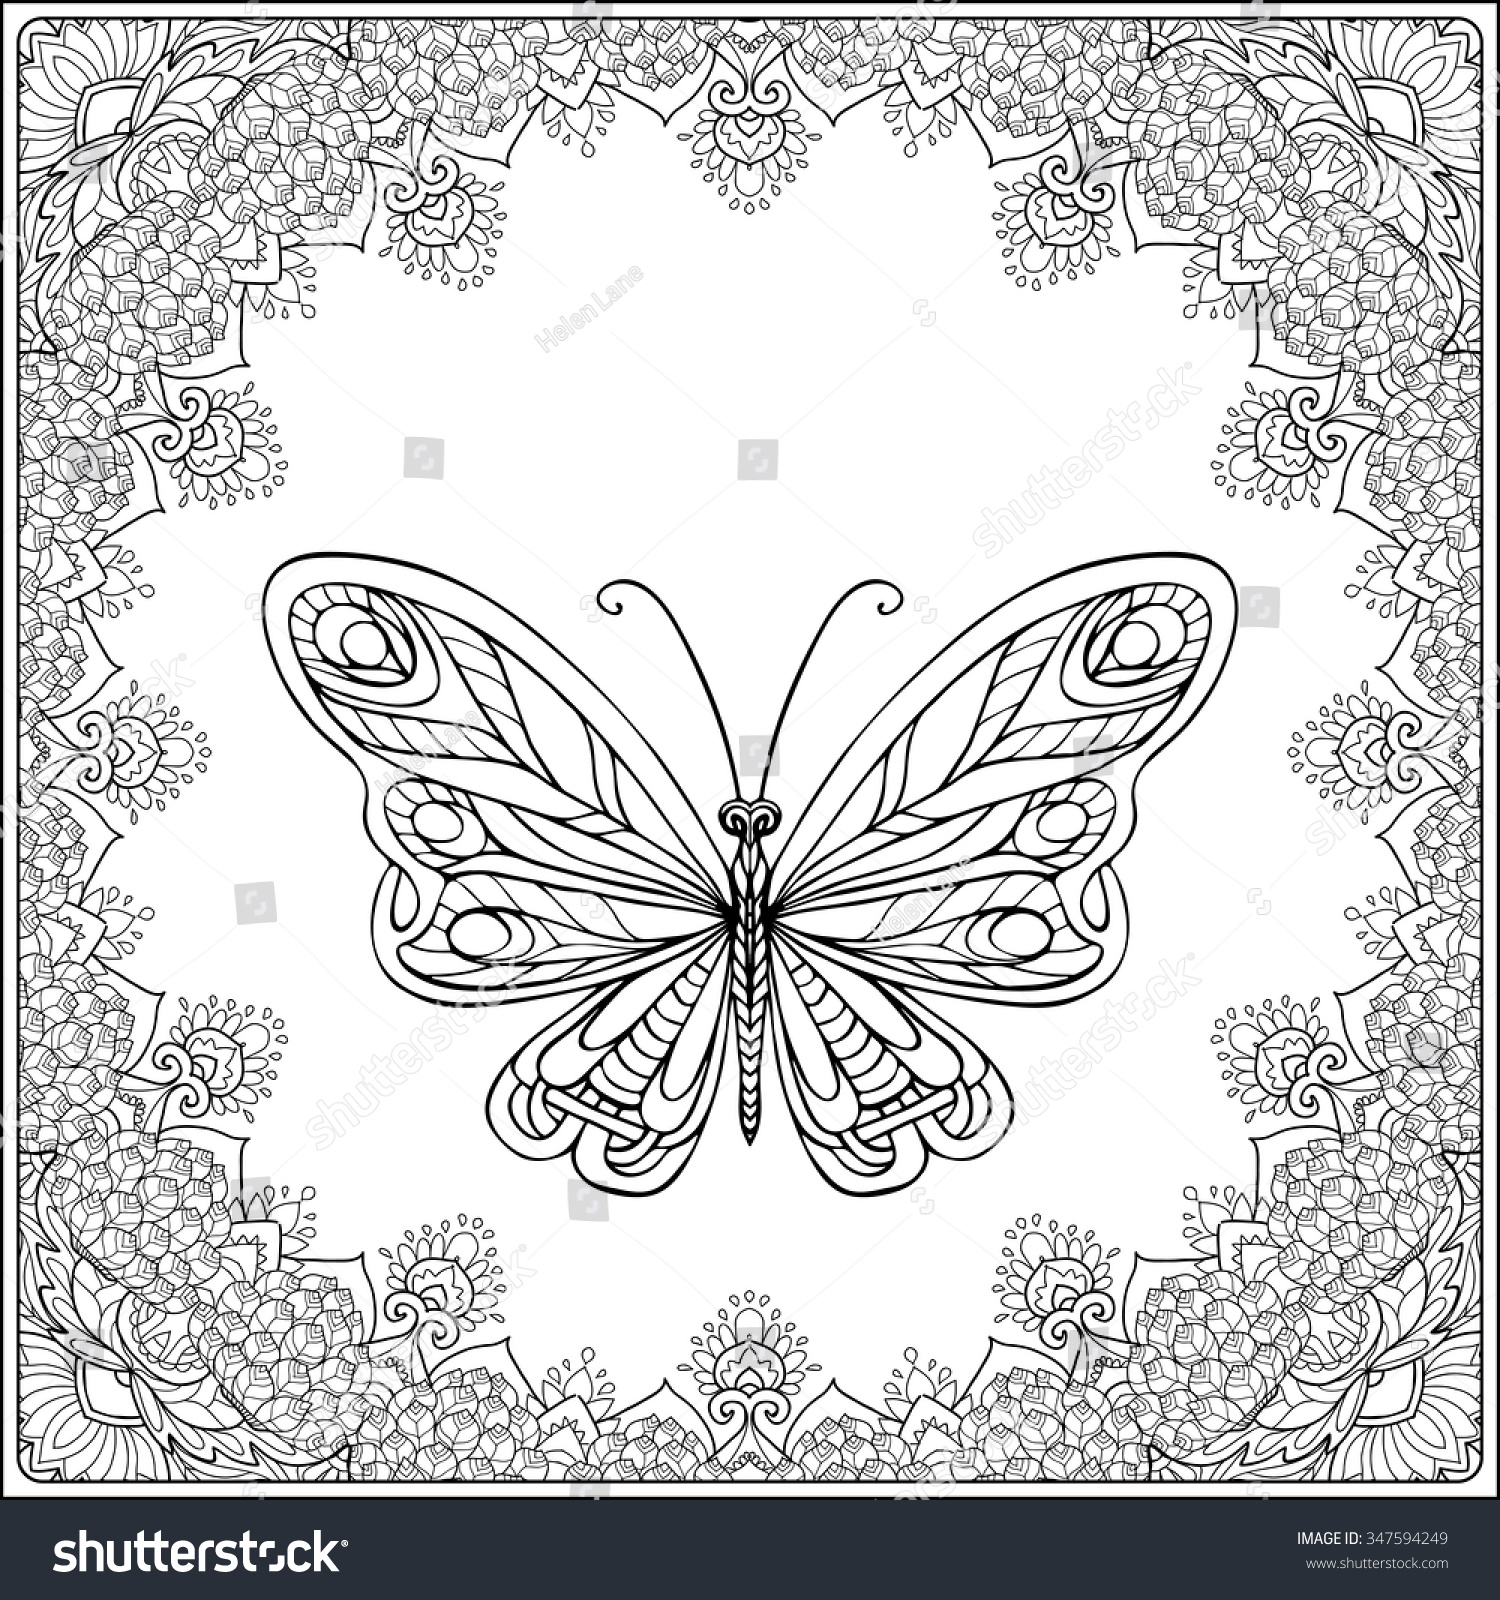 Coloring pages for adults butterflies - Butterfly In Fecorative Frame Coloring Book For Adult And Older Children Coloring Page